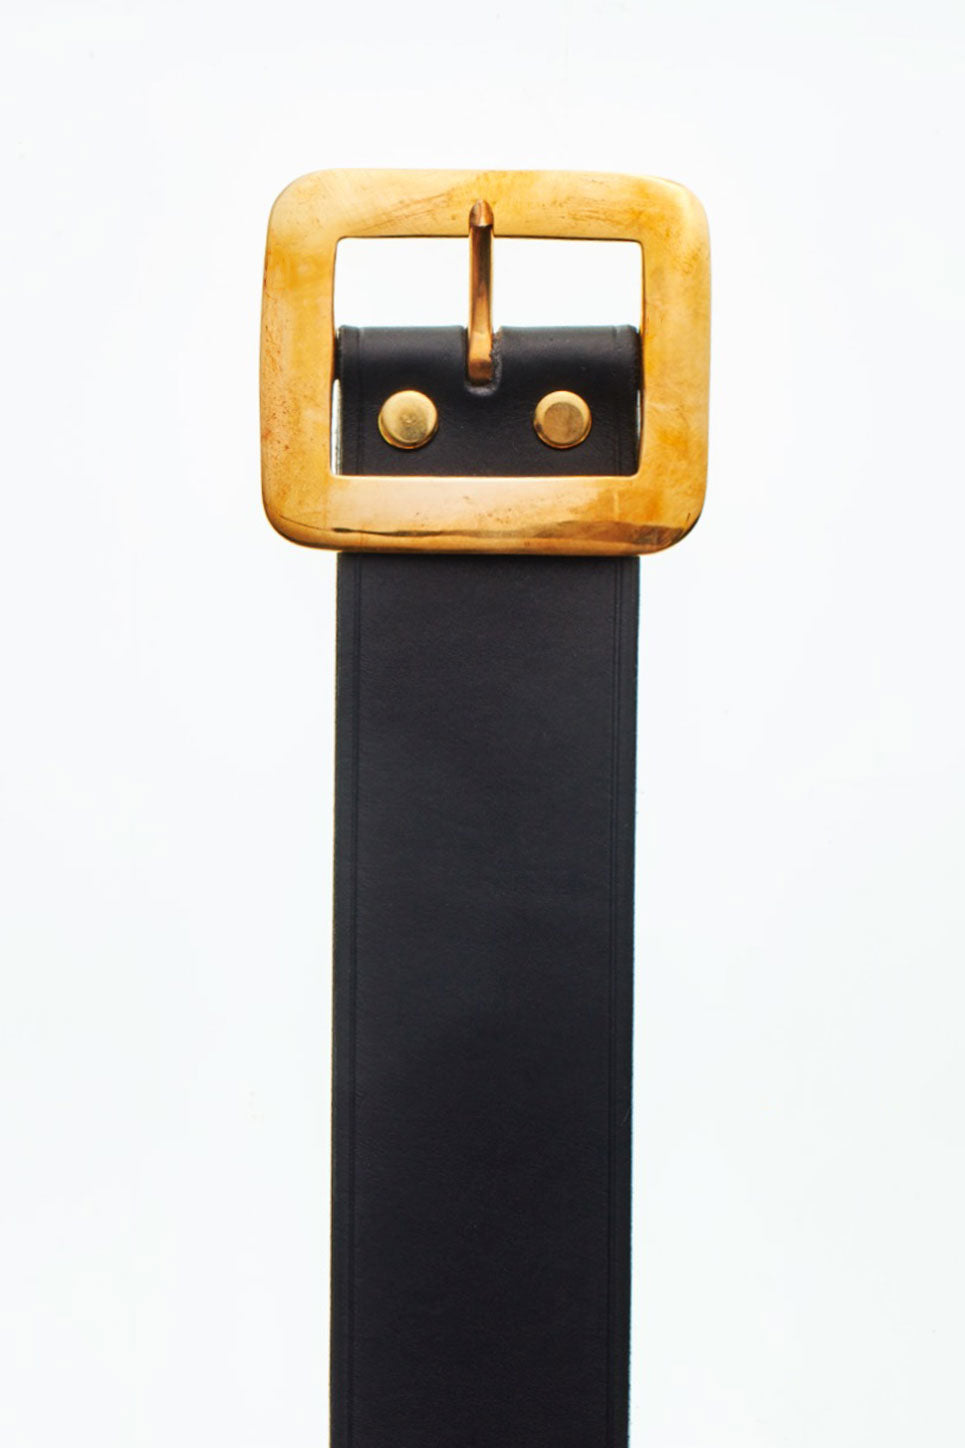 The Fireman's Belt in Black